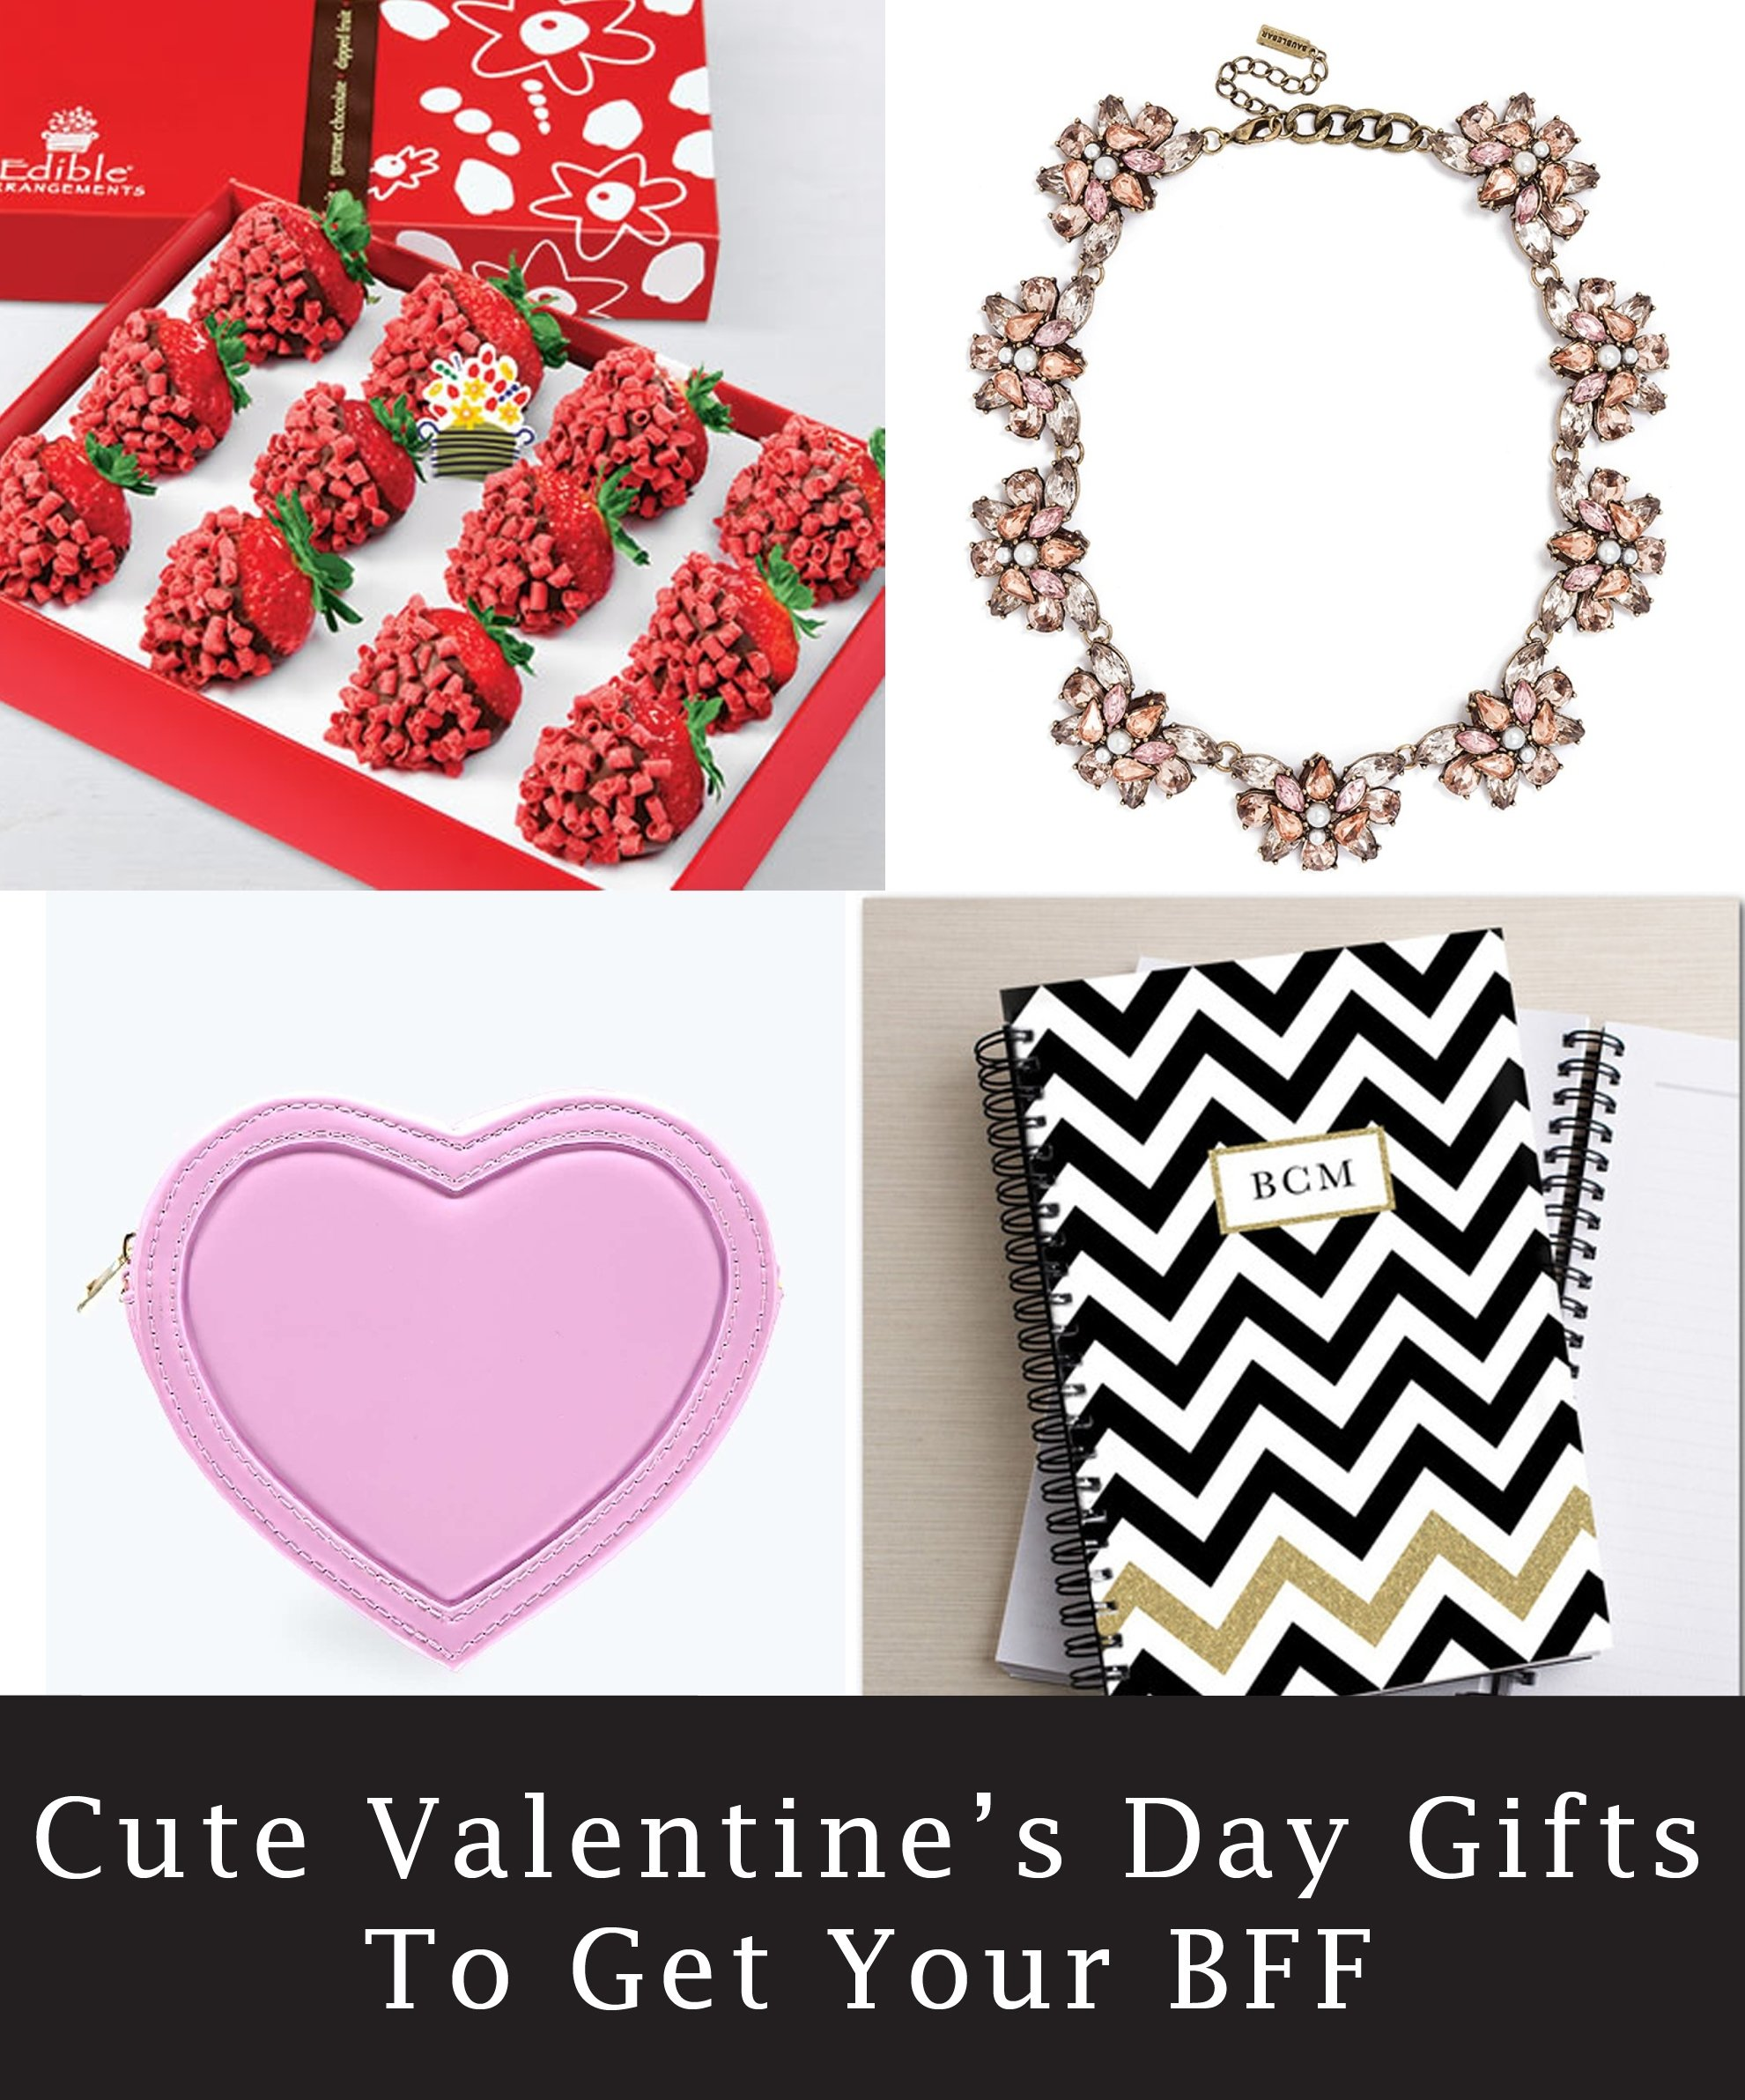 10 Unique Cute Valentines Day Ideas For Friends 7 cute and girly valentines day gift ideas for your bff stylish 1 2020